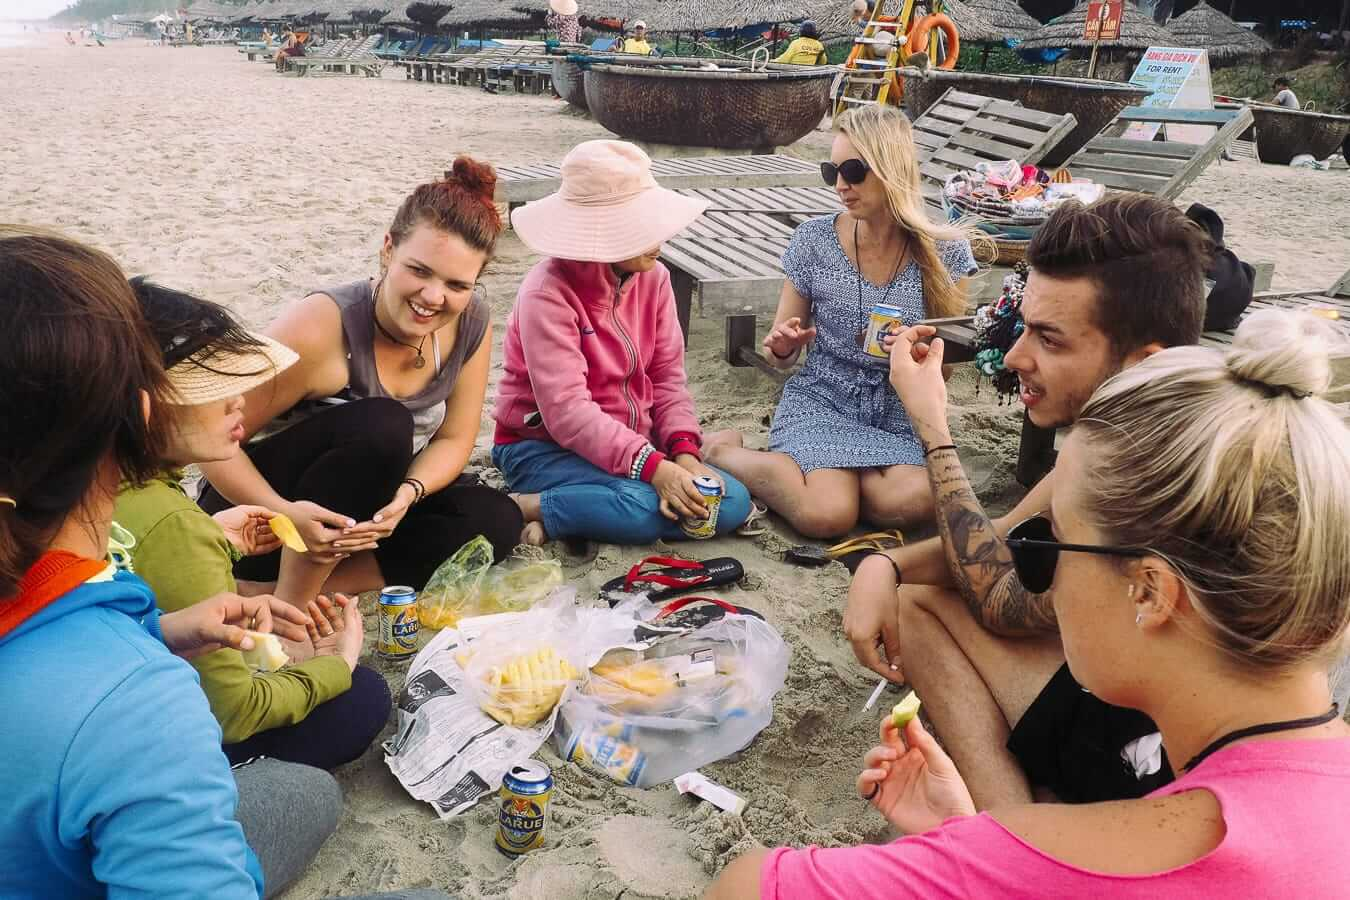 A group of backpackers sharing food and drinks on the beach